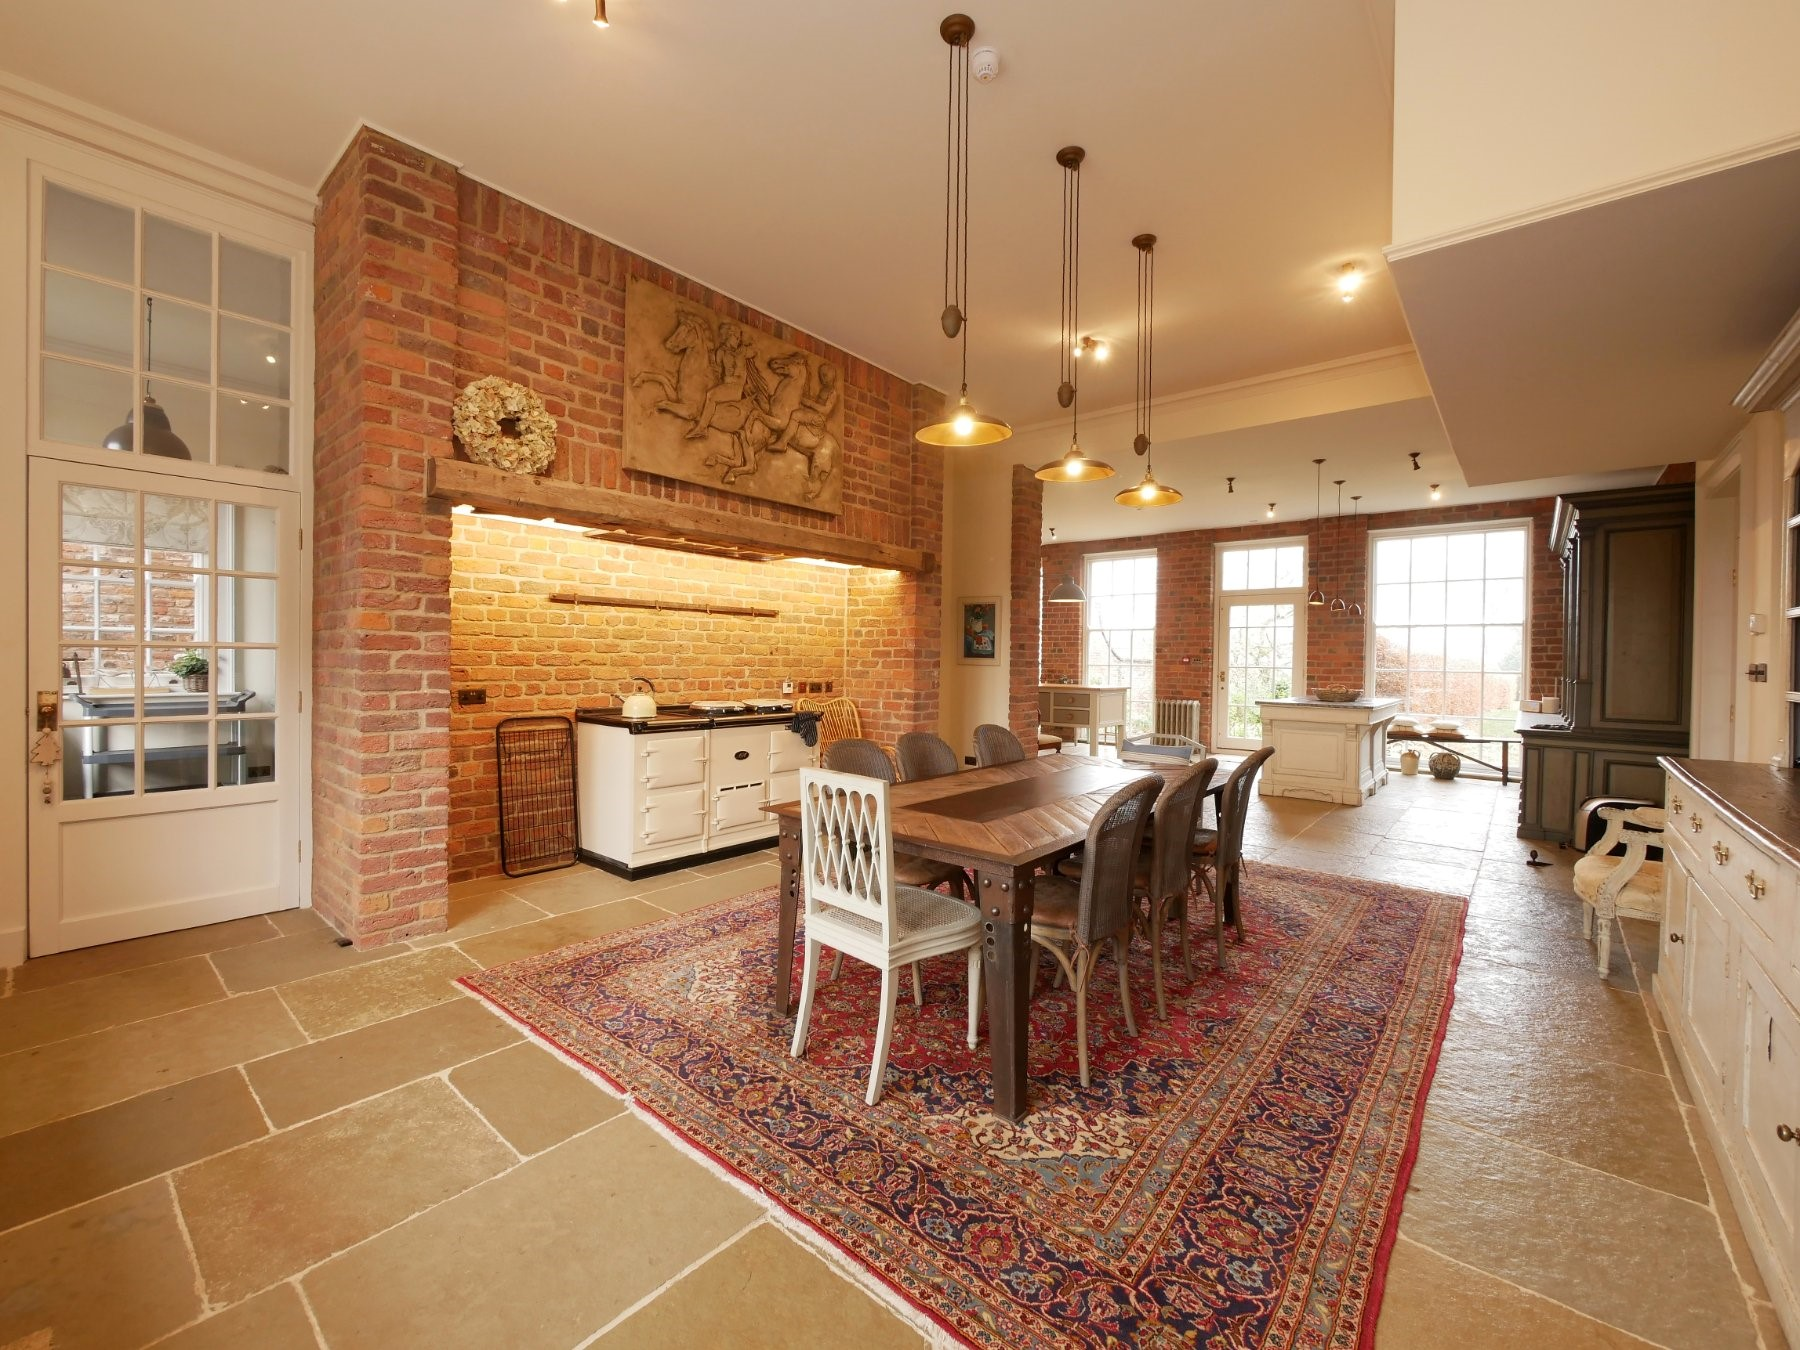 manor house traditional kitchen stone flooring aga dining table persian rug